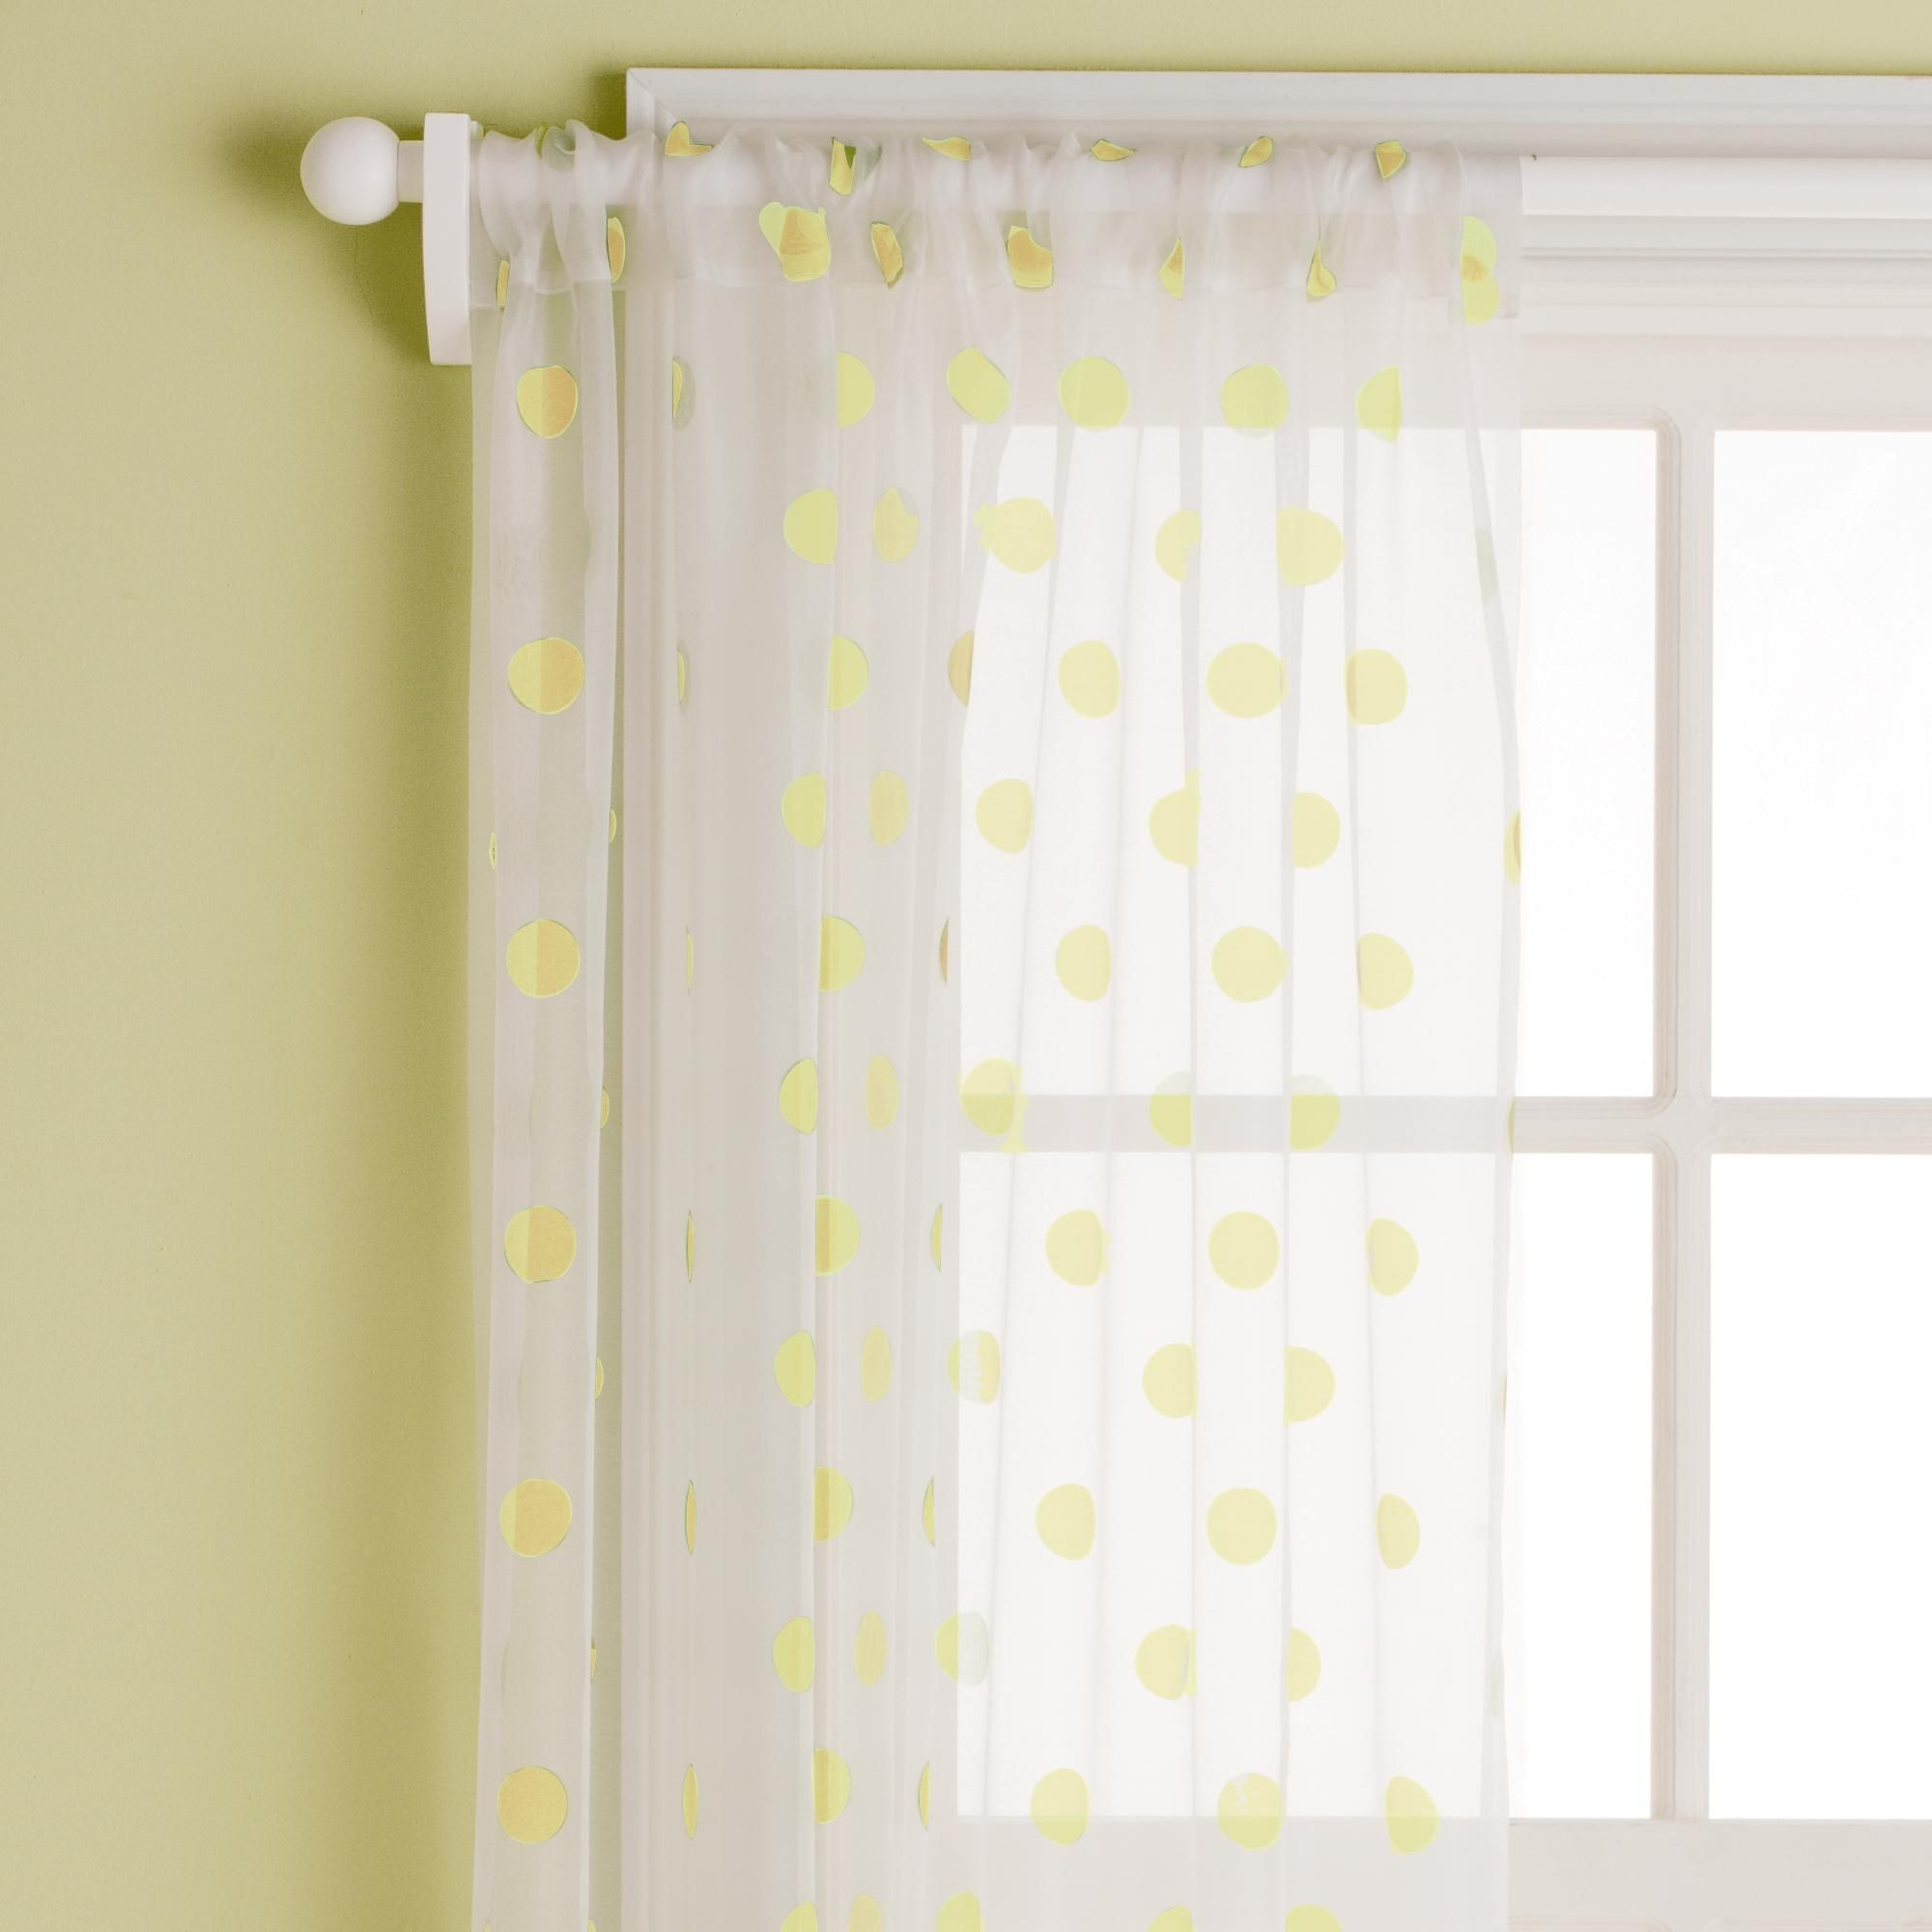 Curtains Rod Placement Use For Our Windows Camerette Tende